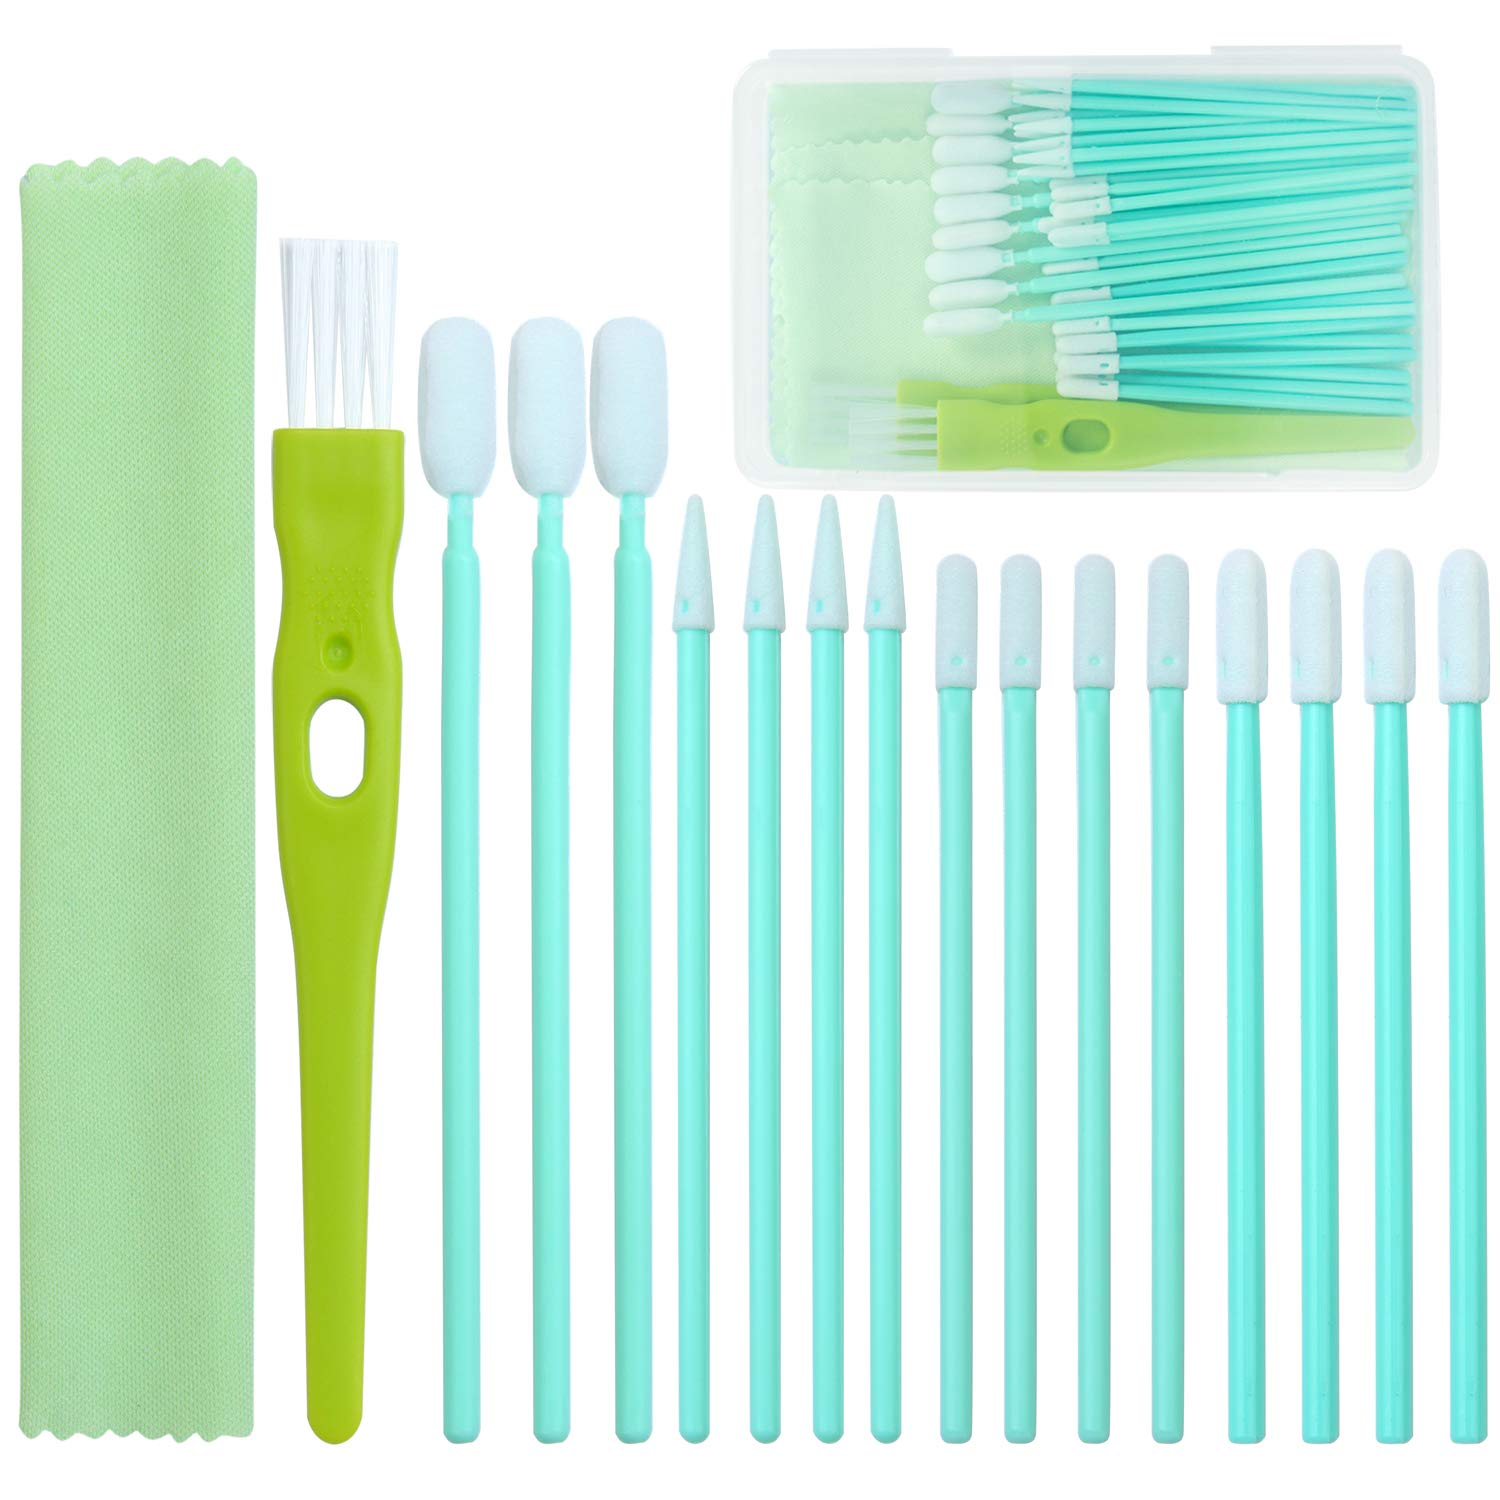 Aneco 44 Pieces Cell Phone Cleaning Kit Brush Set USB Charging Port and Headphone Jack Cleaner Compatible with iPhone, iOS Android, Cell Phone, Electronics Cleaner